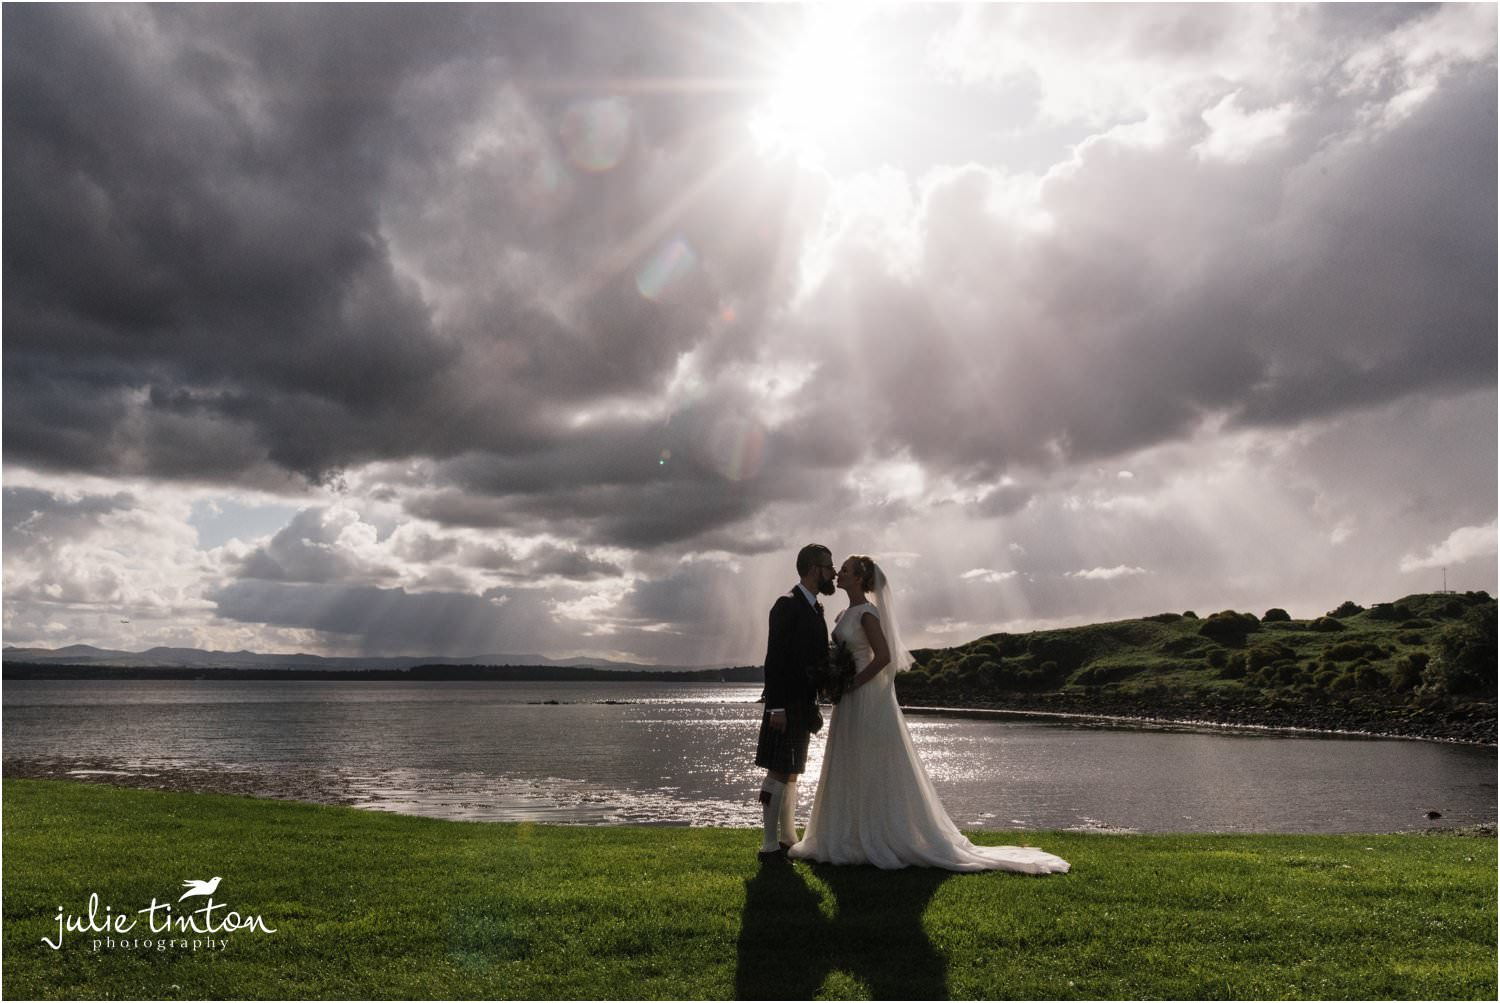 Silhouette of Bride and Groom kissing on Inchcolm Island Scotland